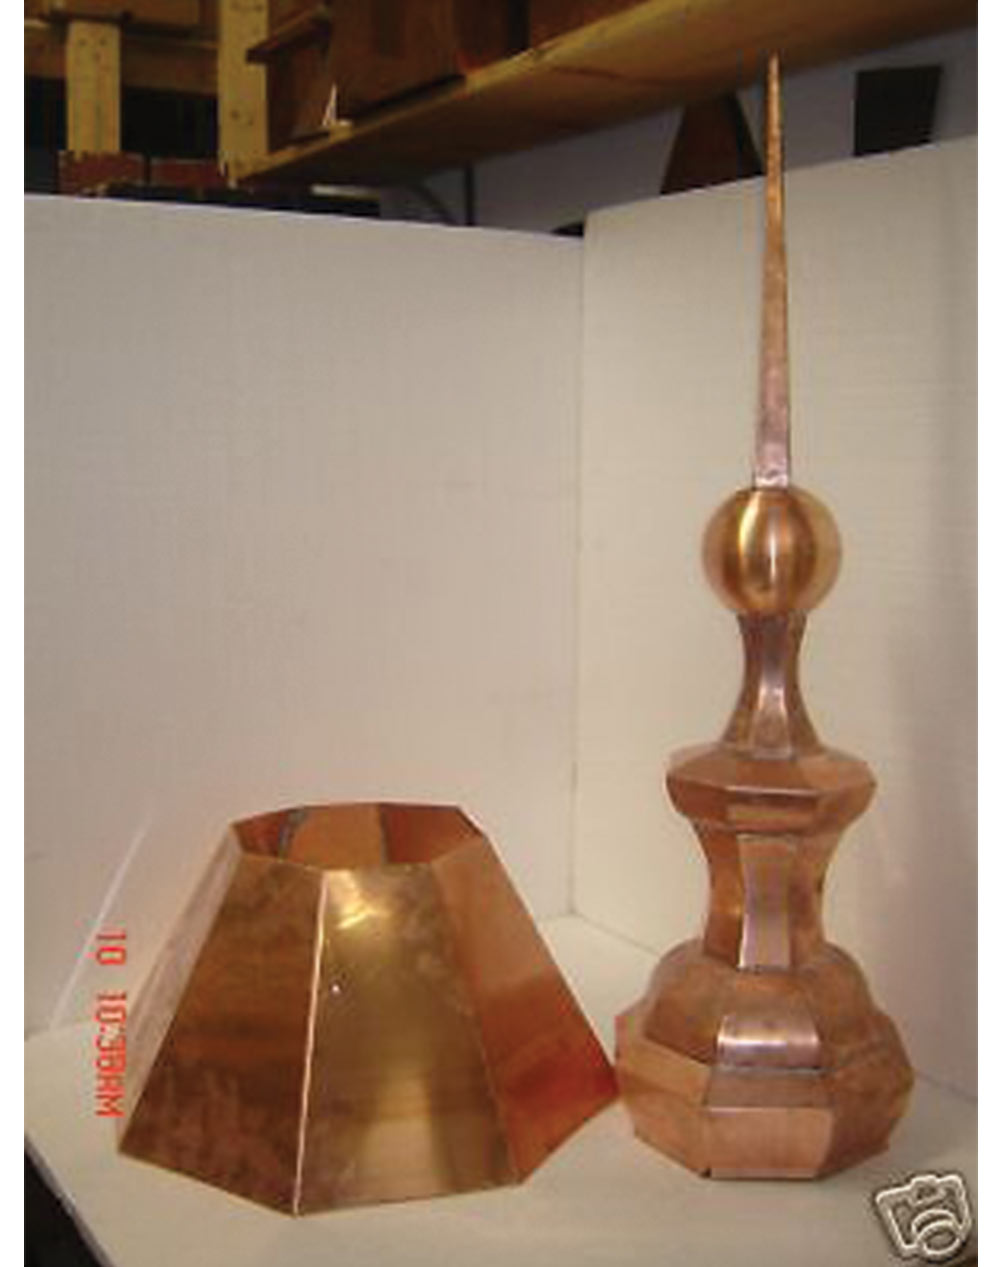 Copper Roofing Turret Finial 8s Octagon Home Of Copper Art